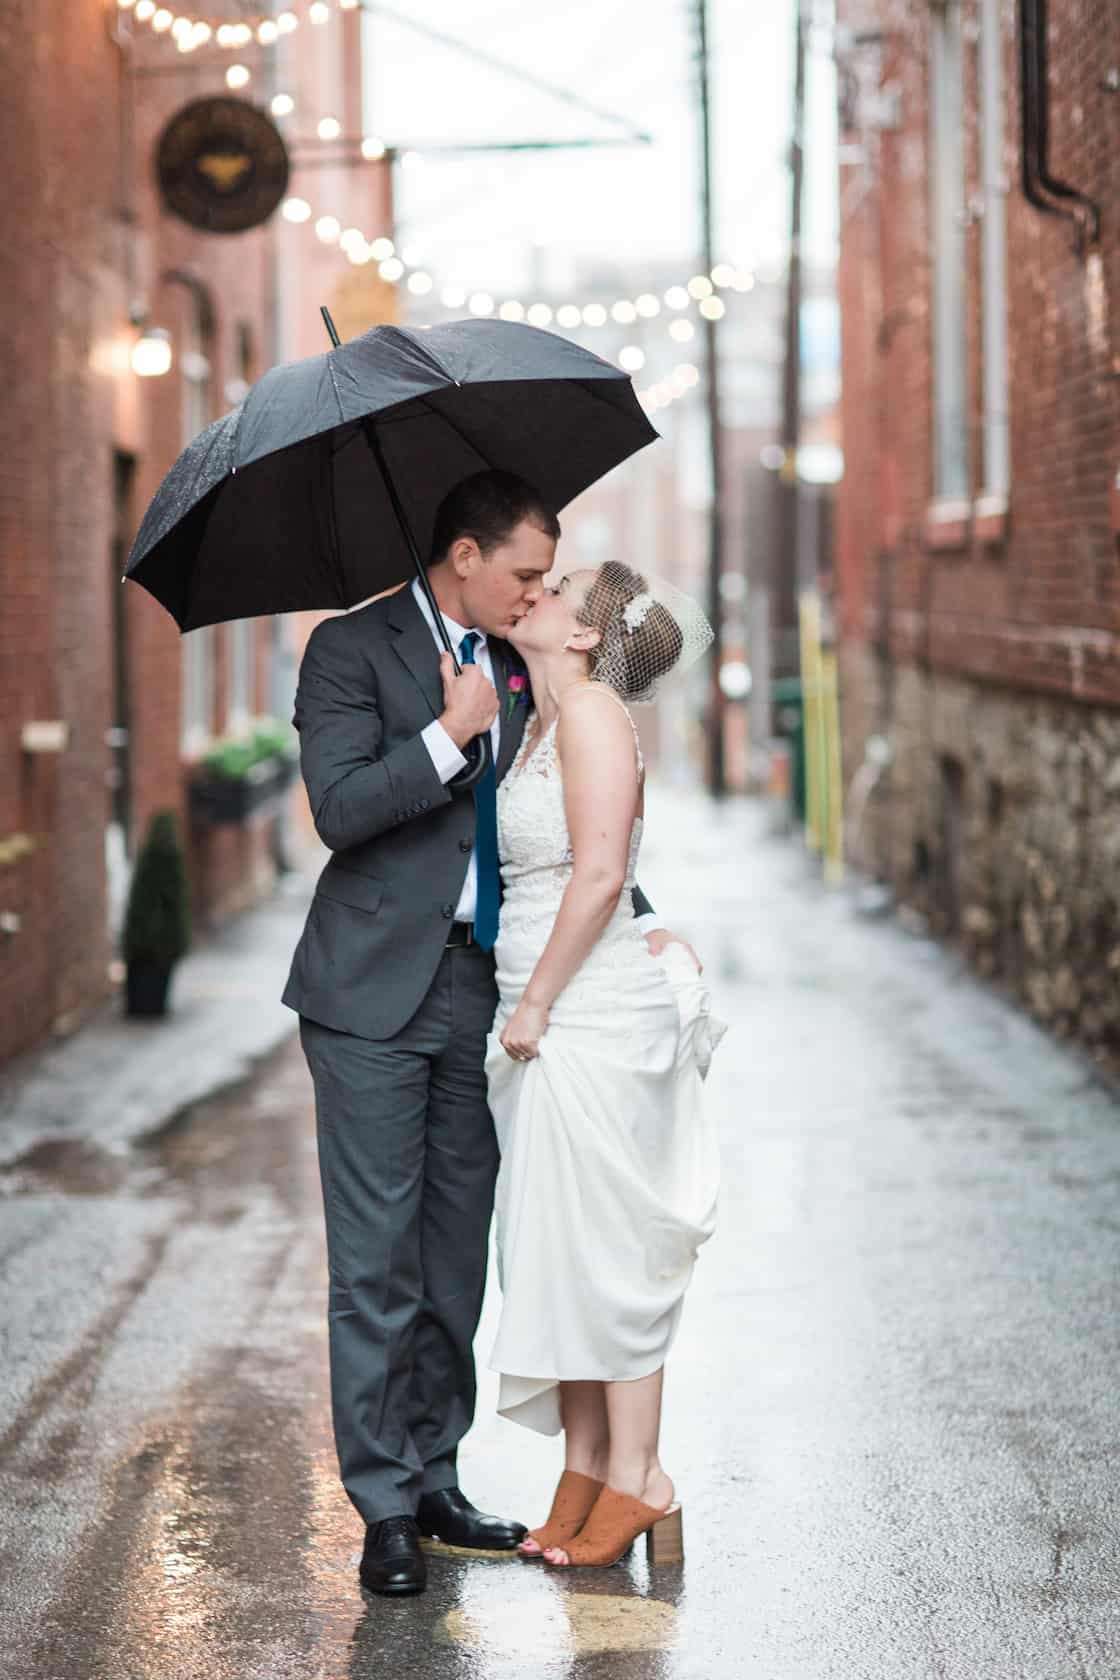 Wedding Couple Kissing in Ally with Umbrella in Kansas City